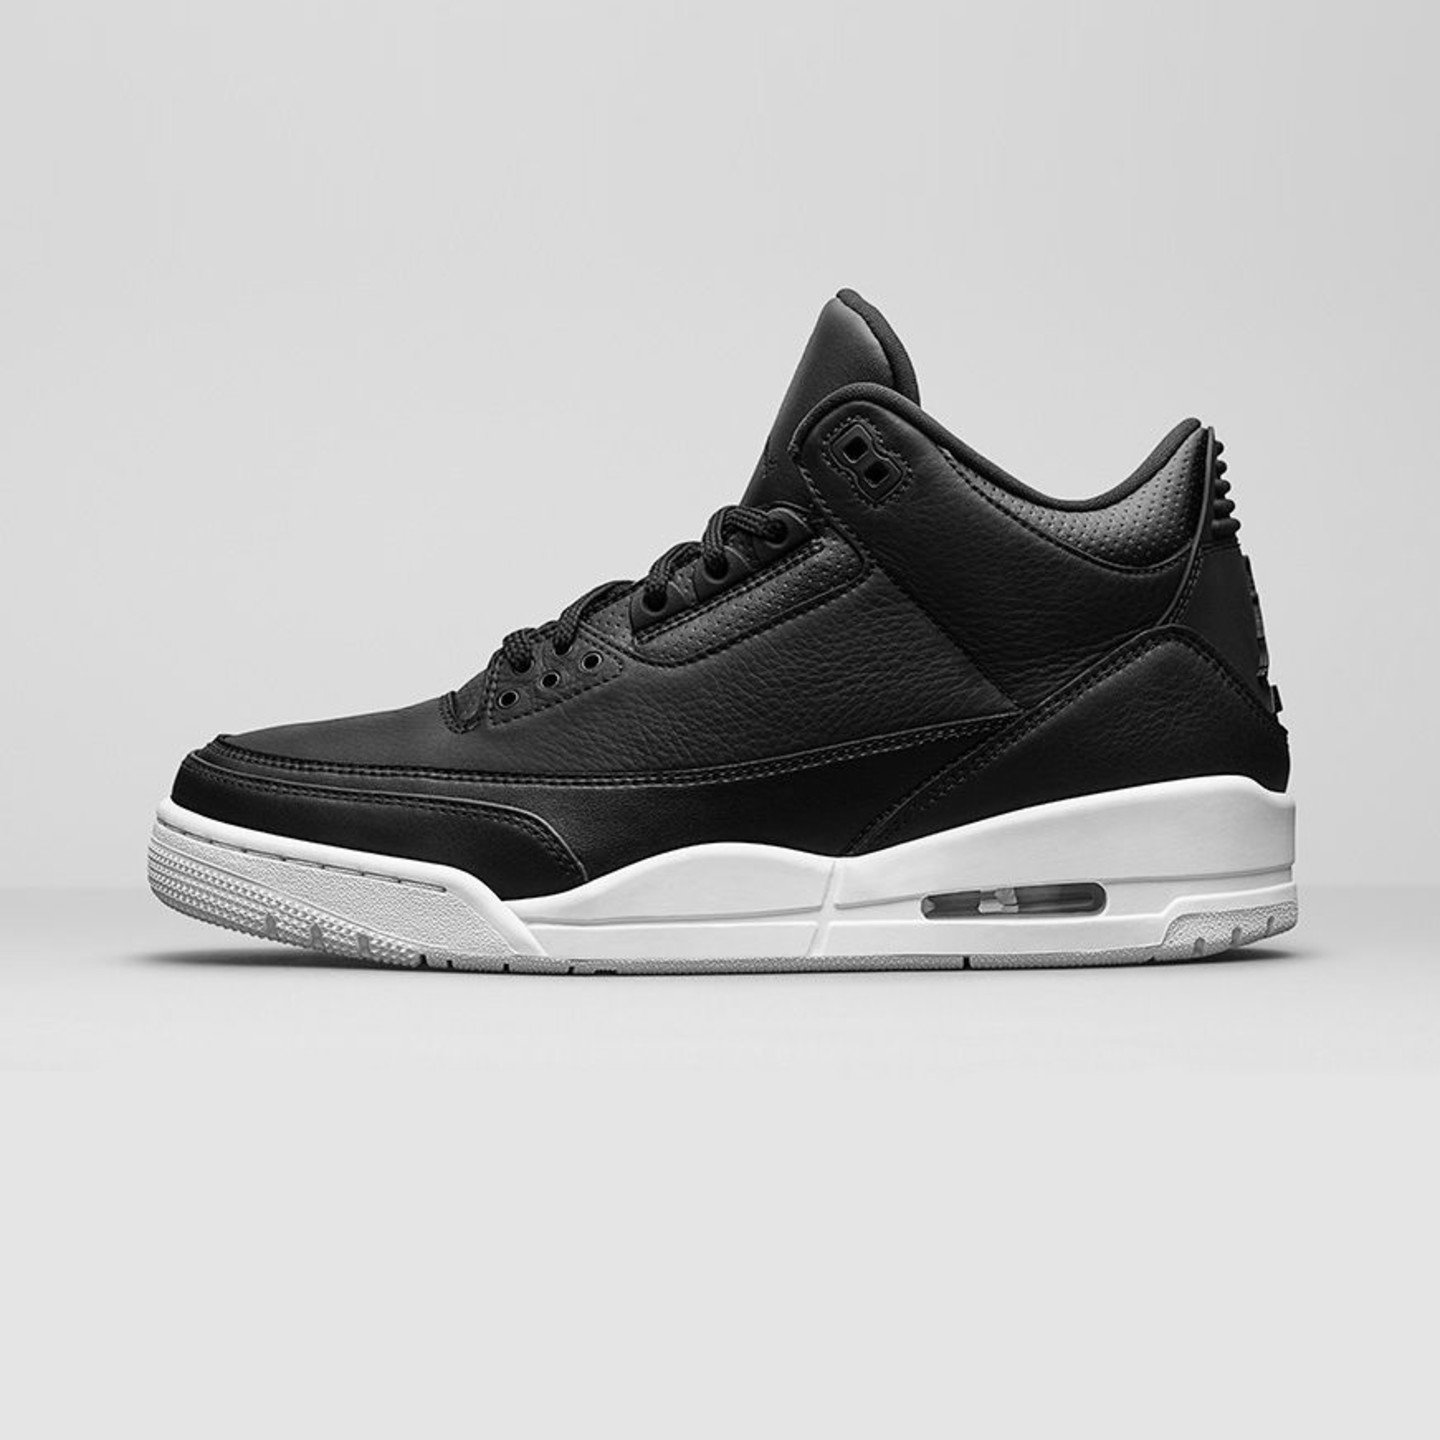 Jordan Air Jordan 3 Retro 'Cyber Monday' Black / White 136064-020-44